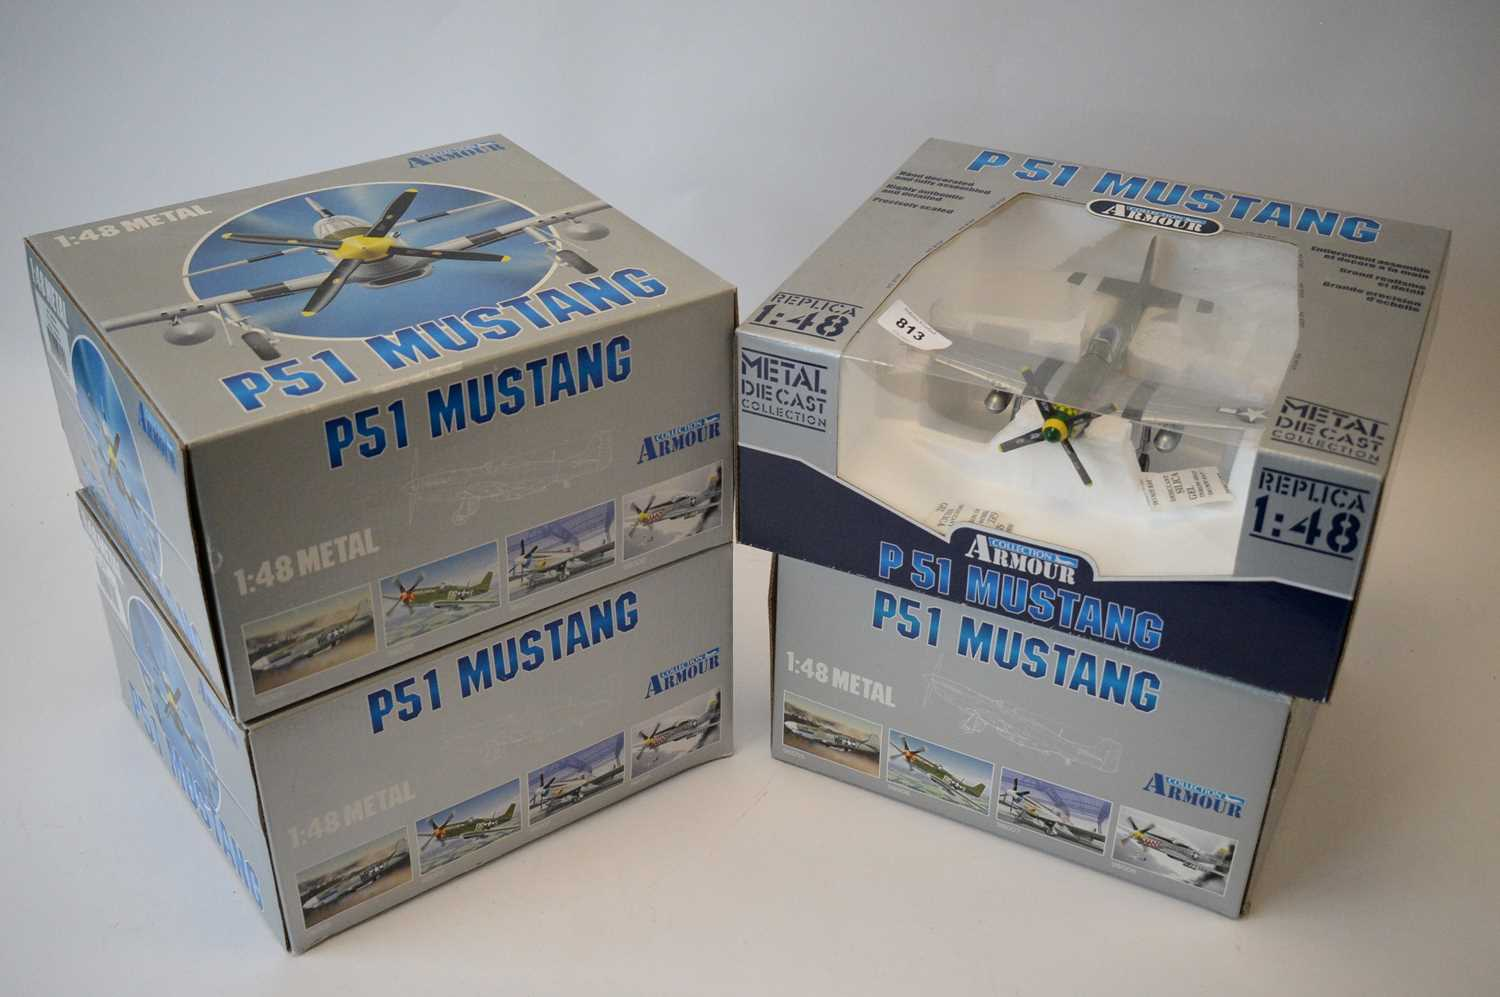 Lot 813 - Collection Armour 1:48 Scale metal diecast aeroplanes - P51 Mustang.